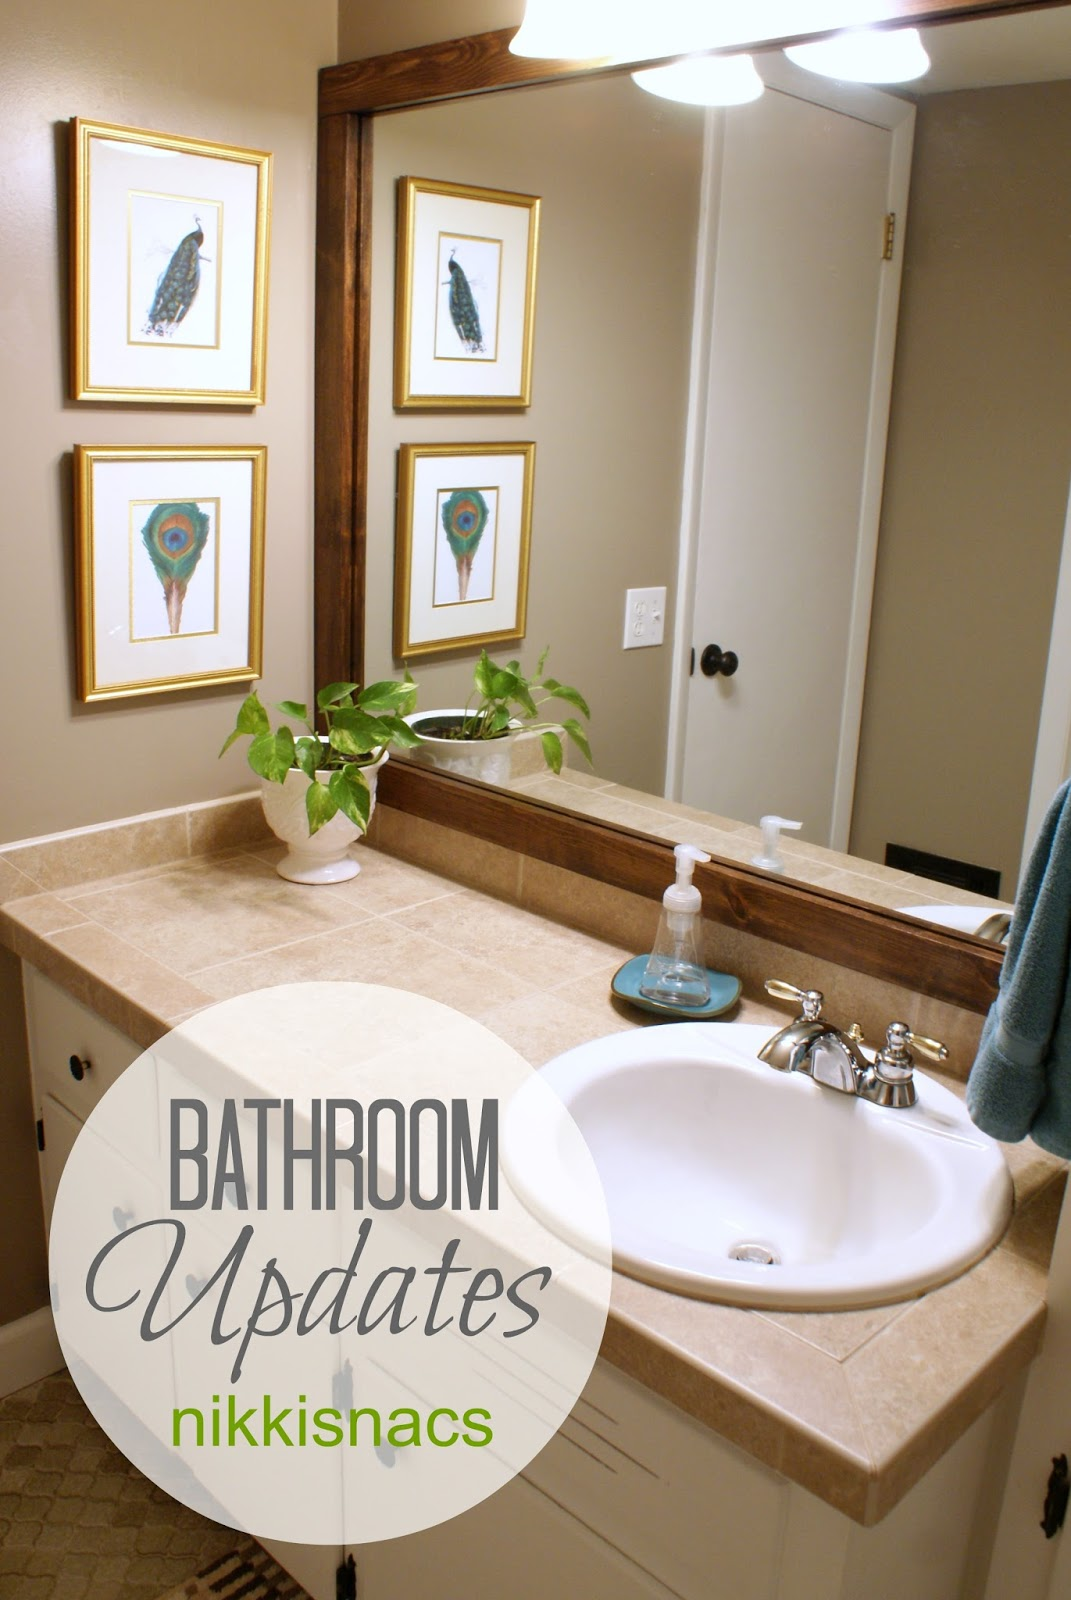 http://nikkisnacs.blogspot.com/2014/07/bathroom-updates.html